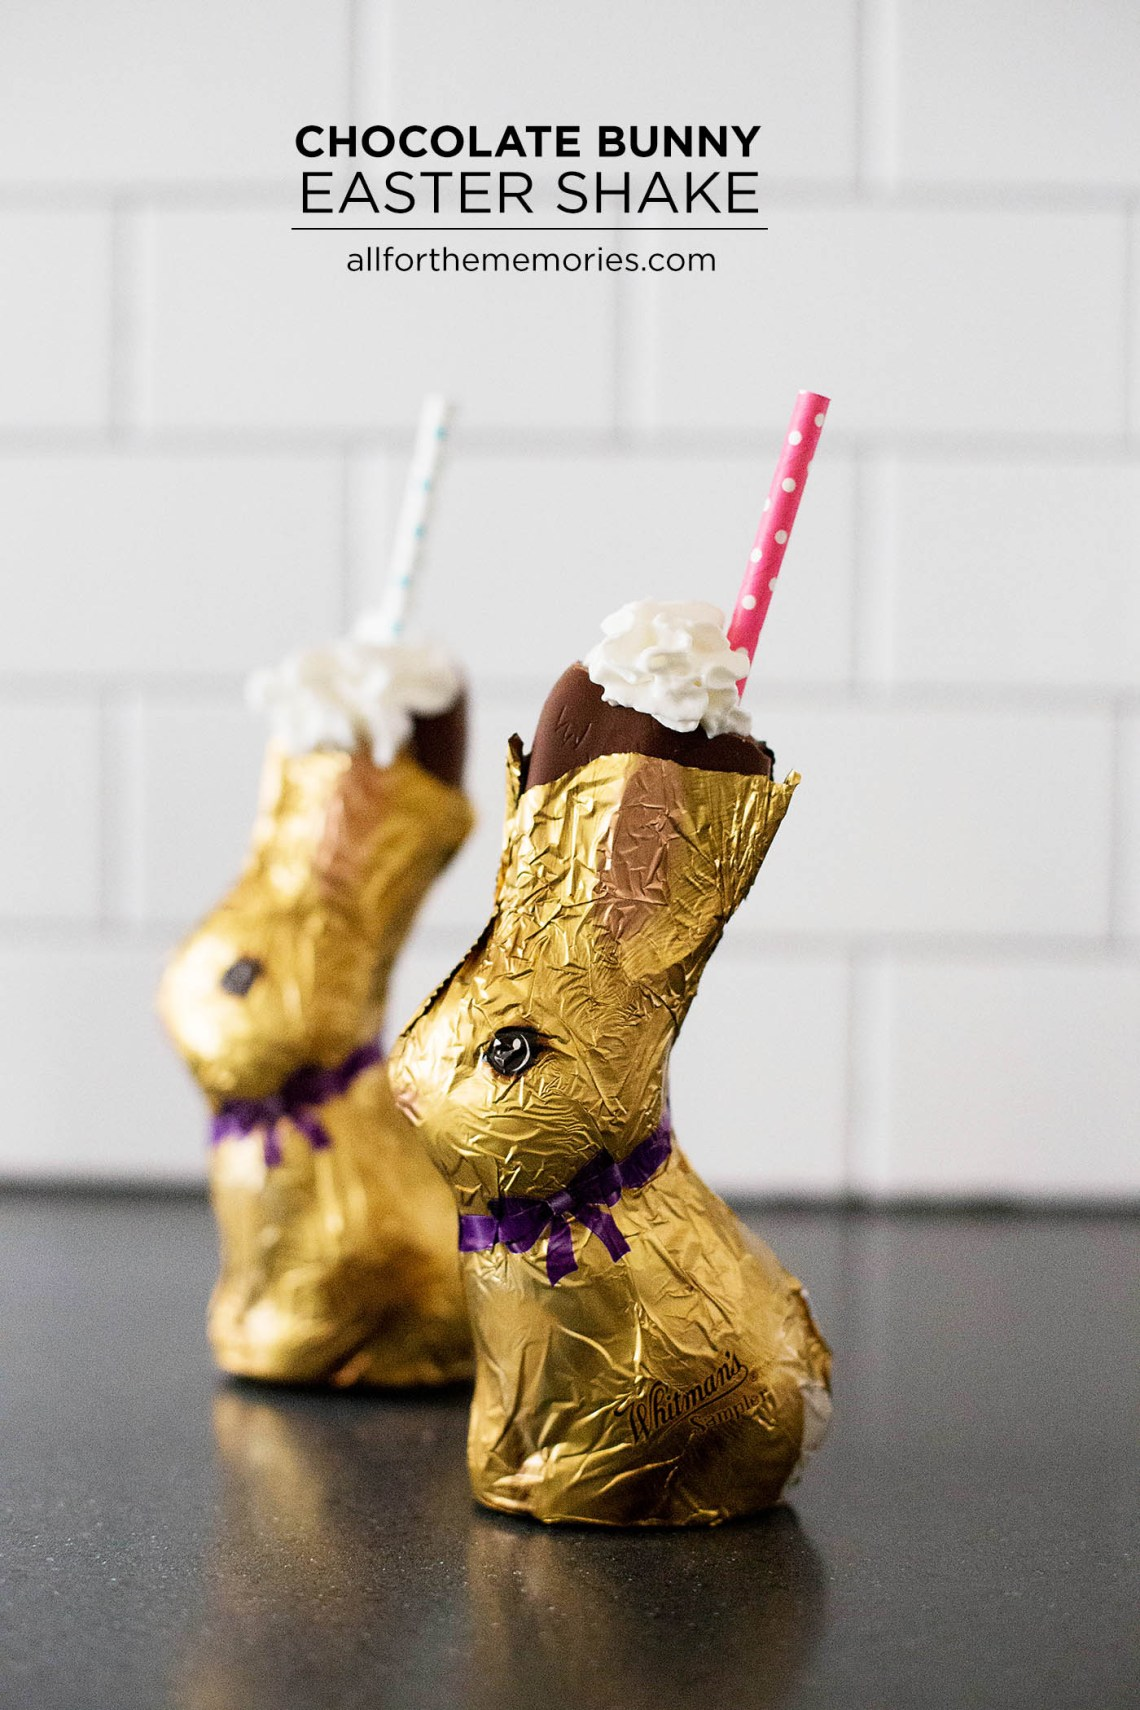 Chocolate bunny Easter Shake - a shake served inside of a chocolate bunny! So cute! Best Easter Ever with www.HealthyFamilyandMe.com